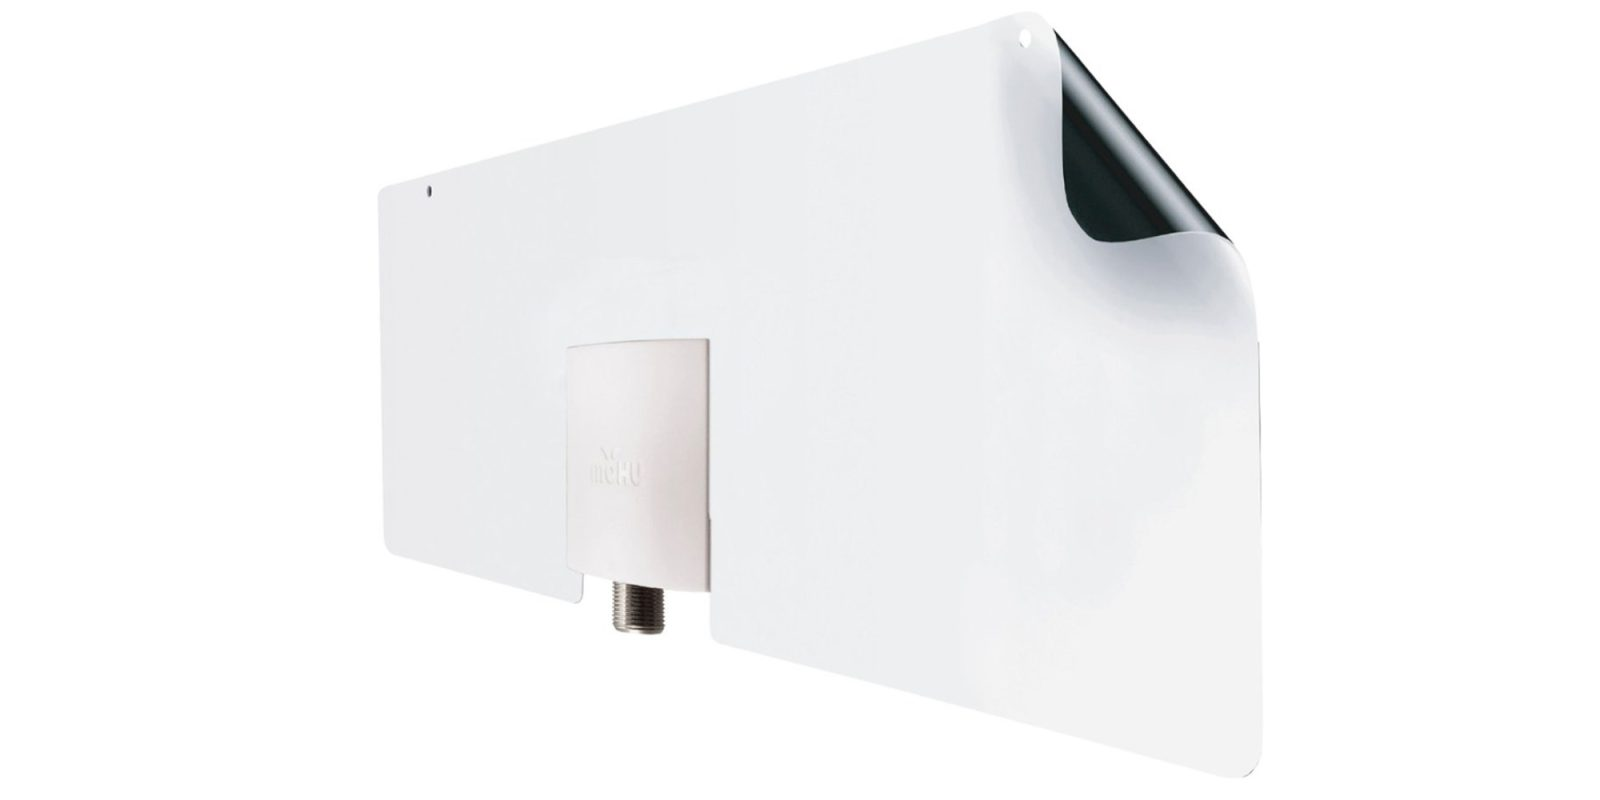 Just $13 adds Mohu Leaf Metro HDTV Antenna to your cord-cutting kit (Reg. $18)